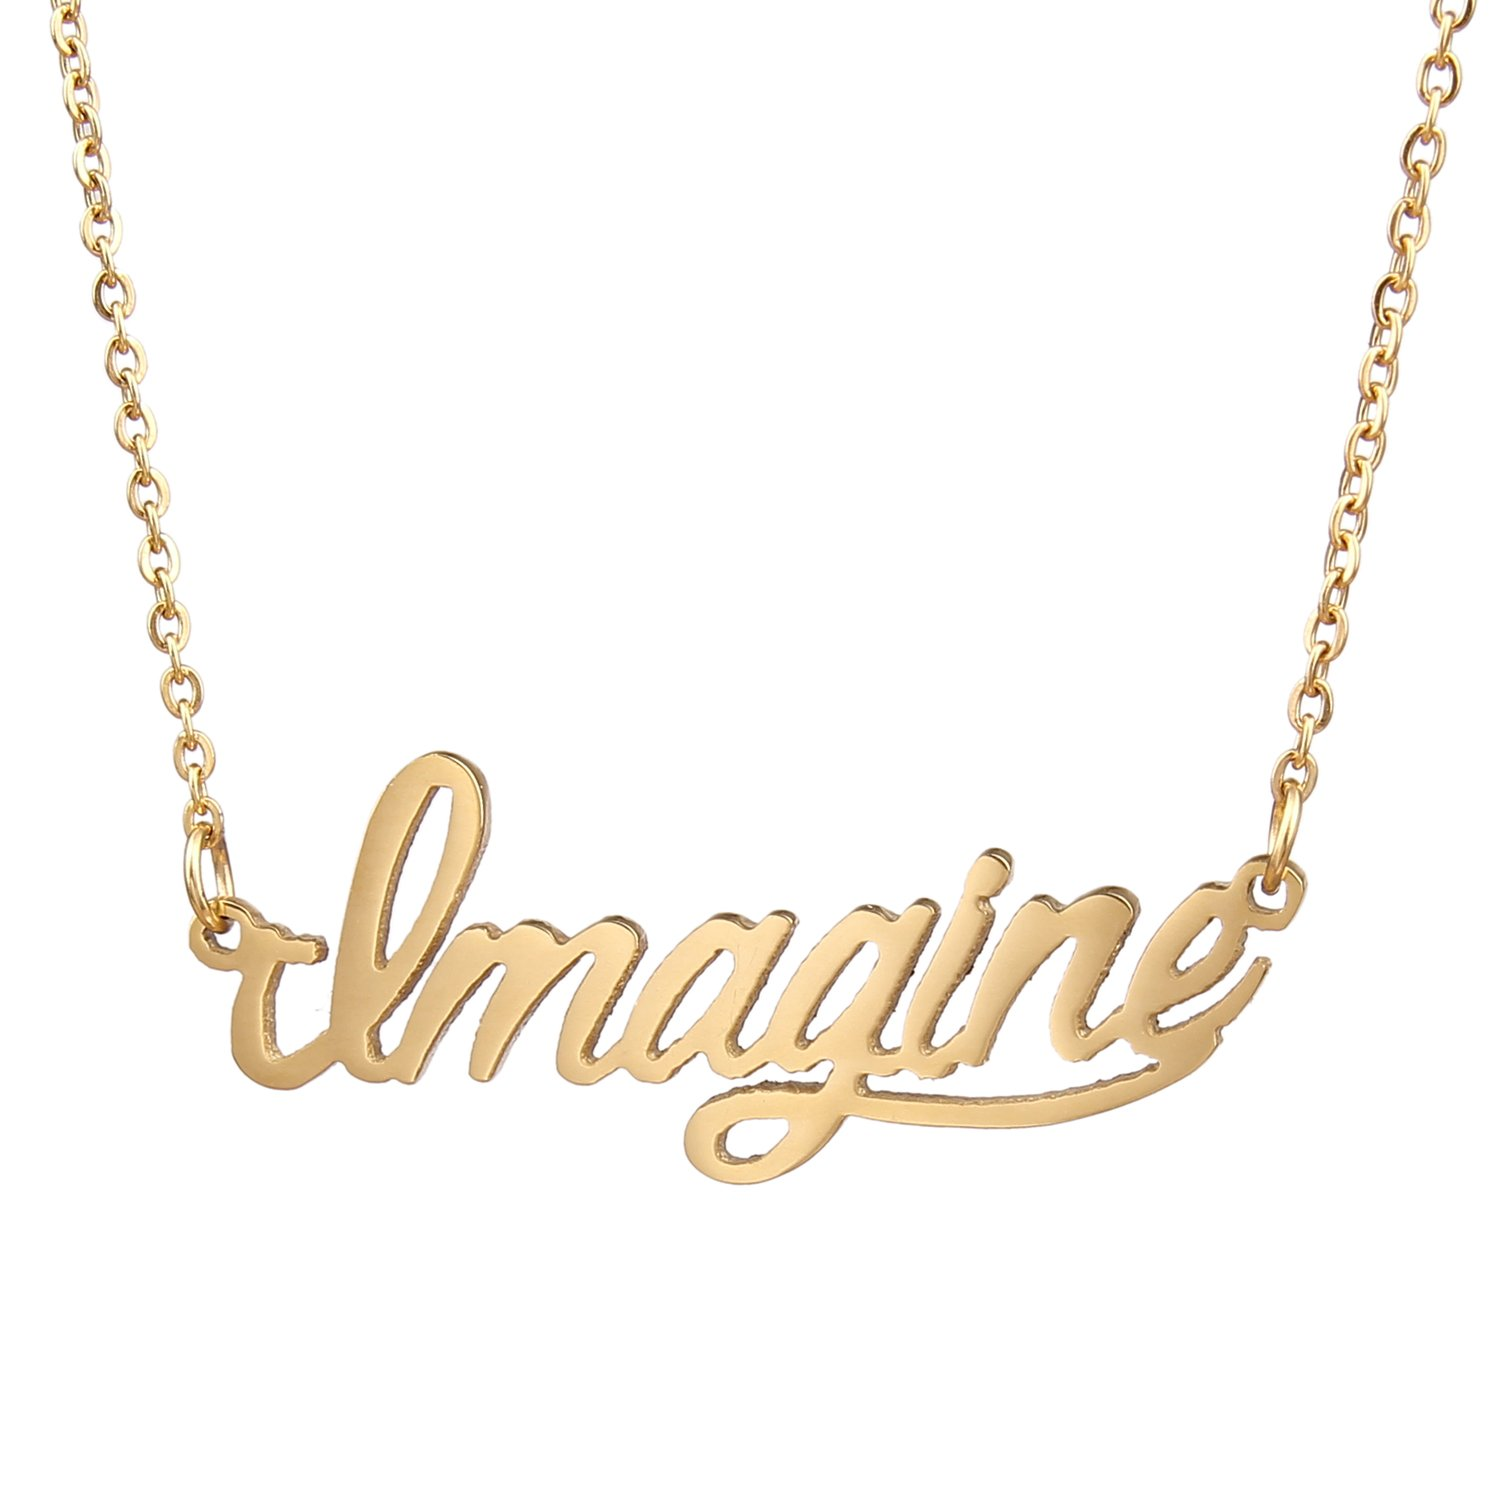 AOLO Name Necklace Initial Power Words Pendant Necklace Jewellerygets WNL-2425 Believe Gold